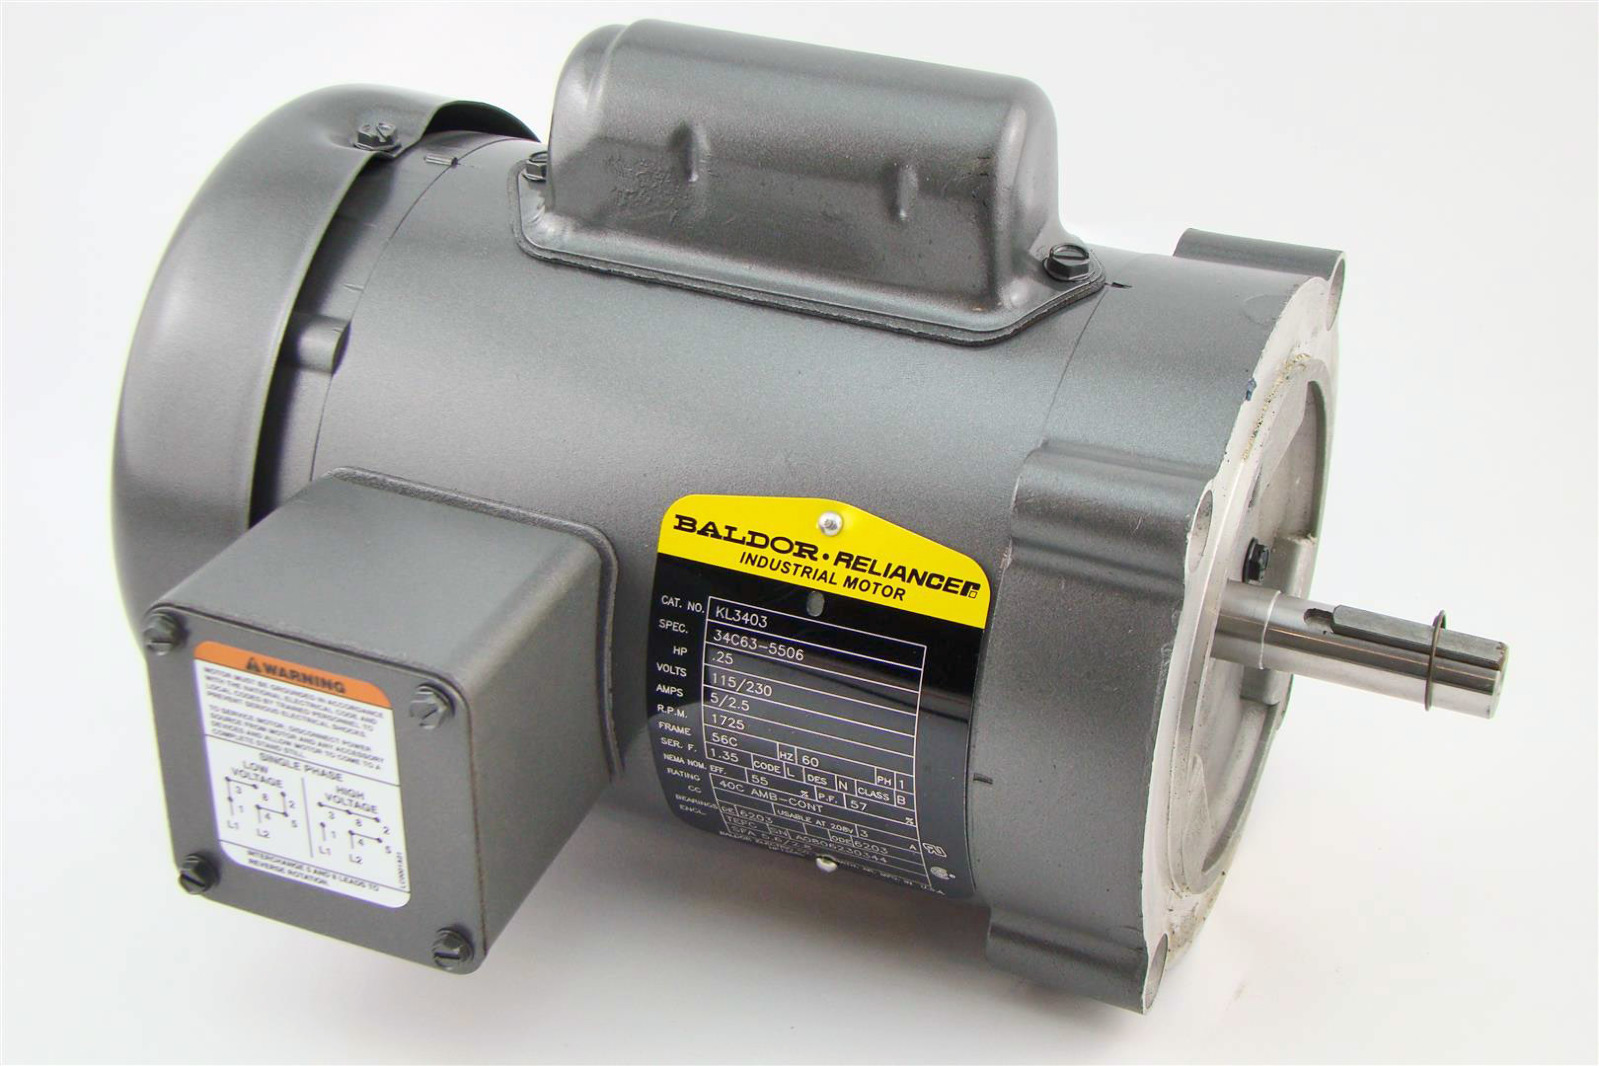 baldor single phase 230v motor wiring diagram msd ignition digital 6a anleitung reliancer industrial 25hp 115